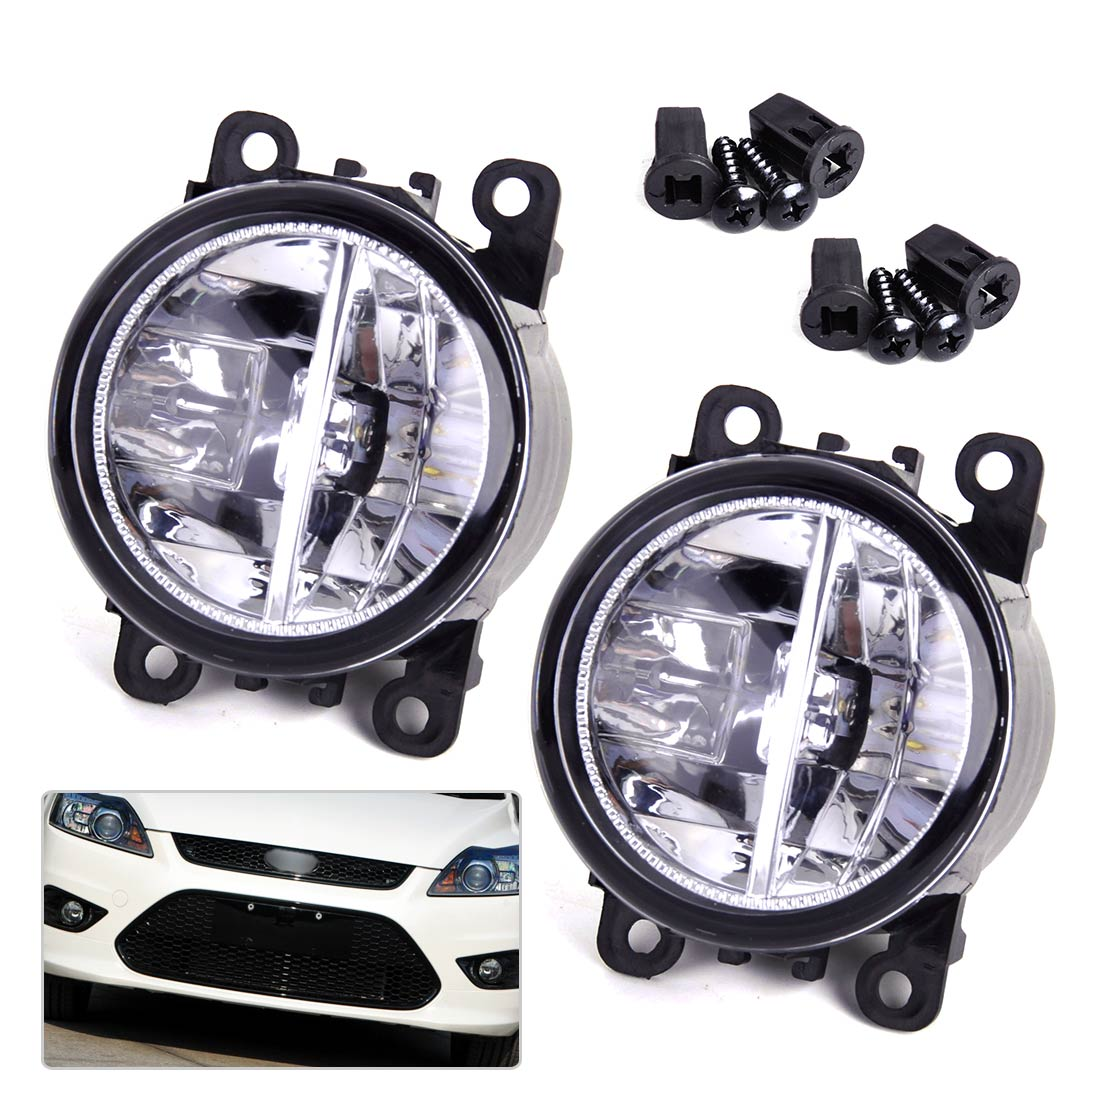 DWCX 2x Right Left LED Fog Light Lamp AC2592111 4F9Z15200AA 33900STKA11 for Ford Focus Honda Acura Lincoln Nissan Subaru Suzuki dwcx fog light lamp female adapter wiring harness sockets wire connector for ford focus acura nissan honda cr v infiniti subaru